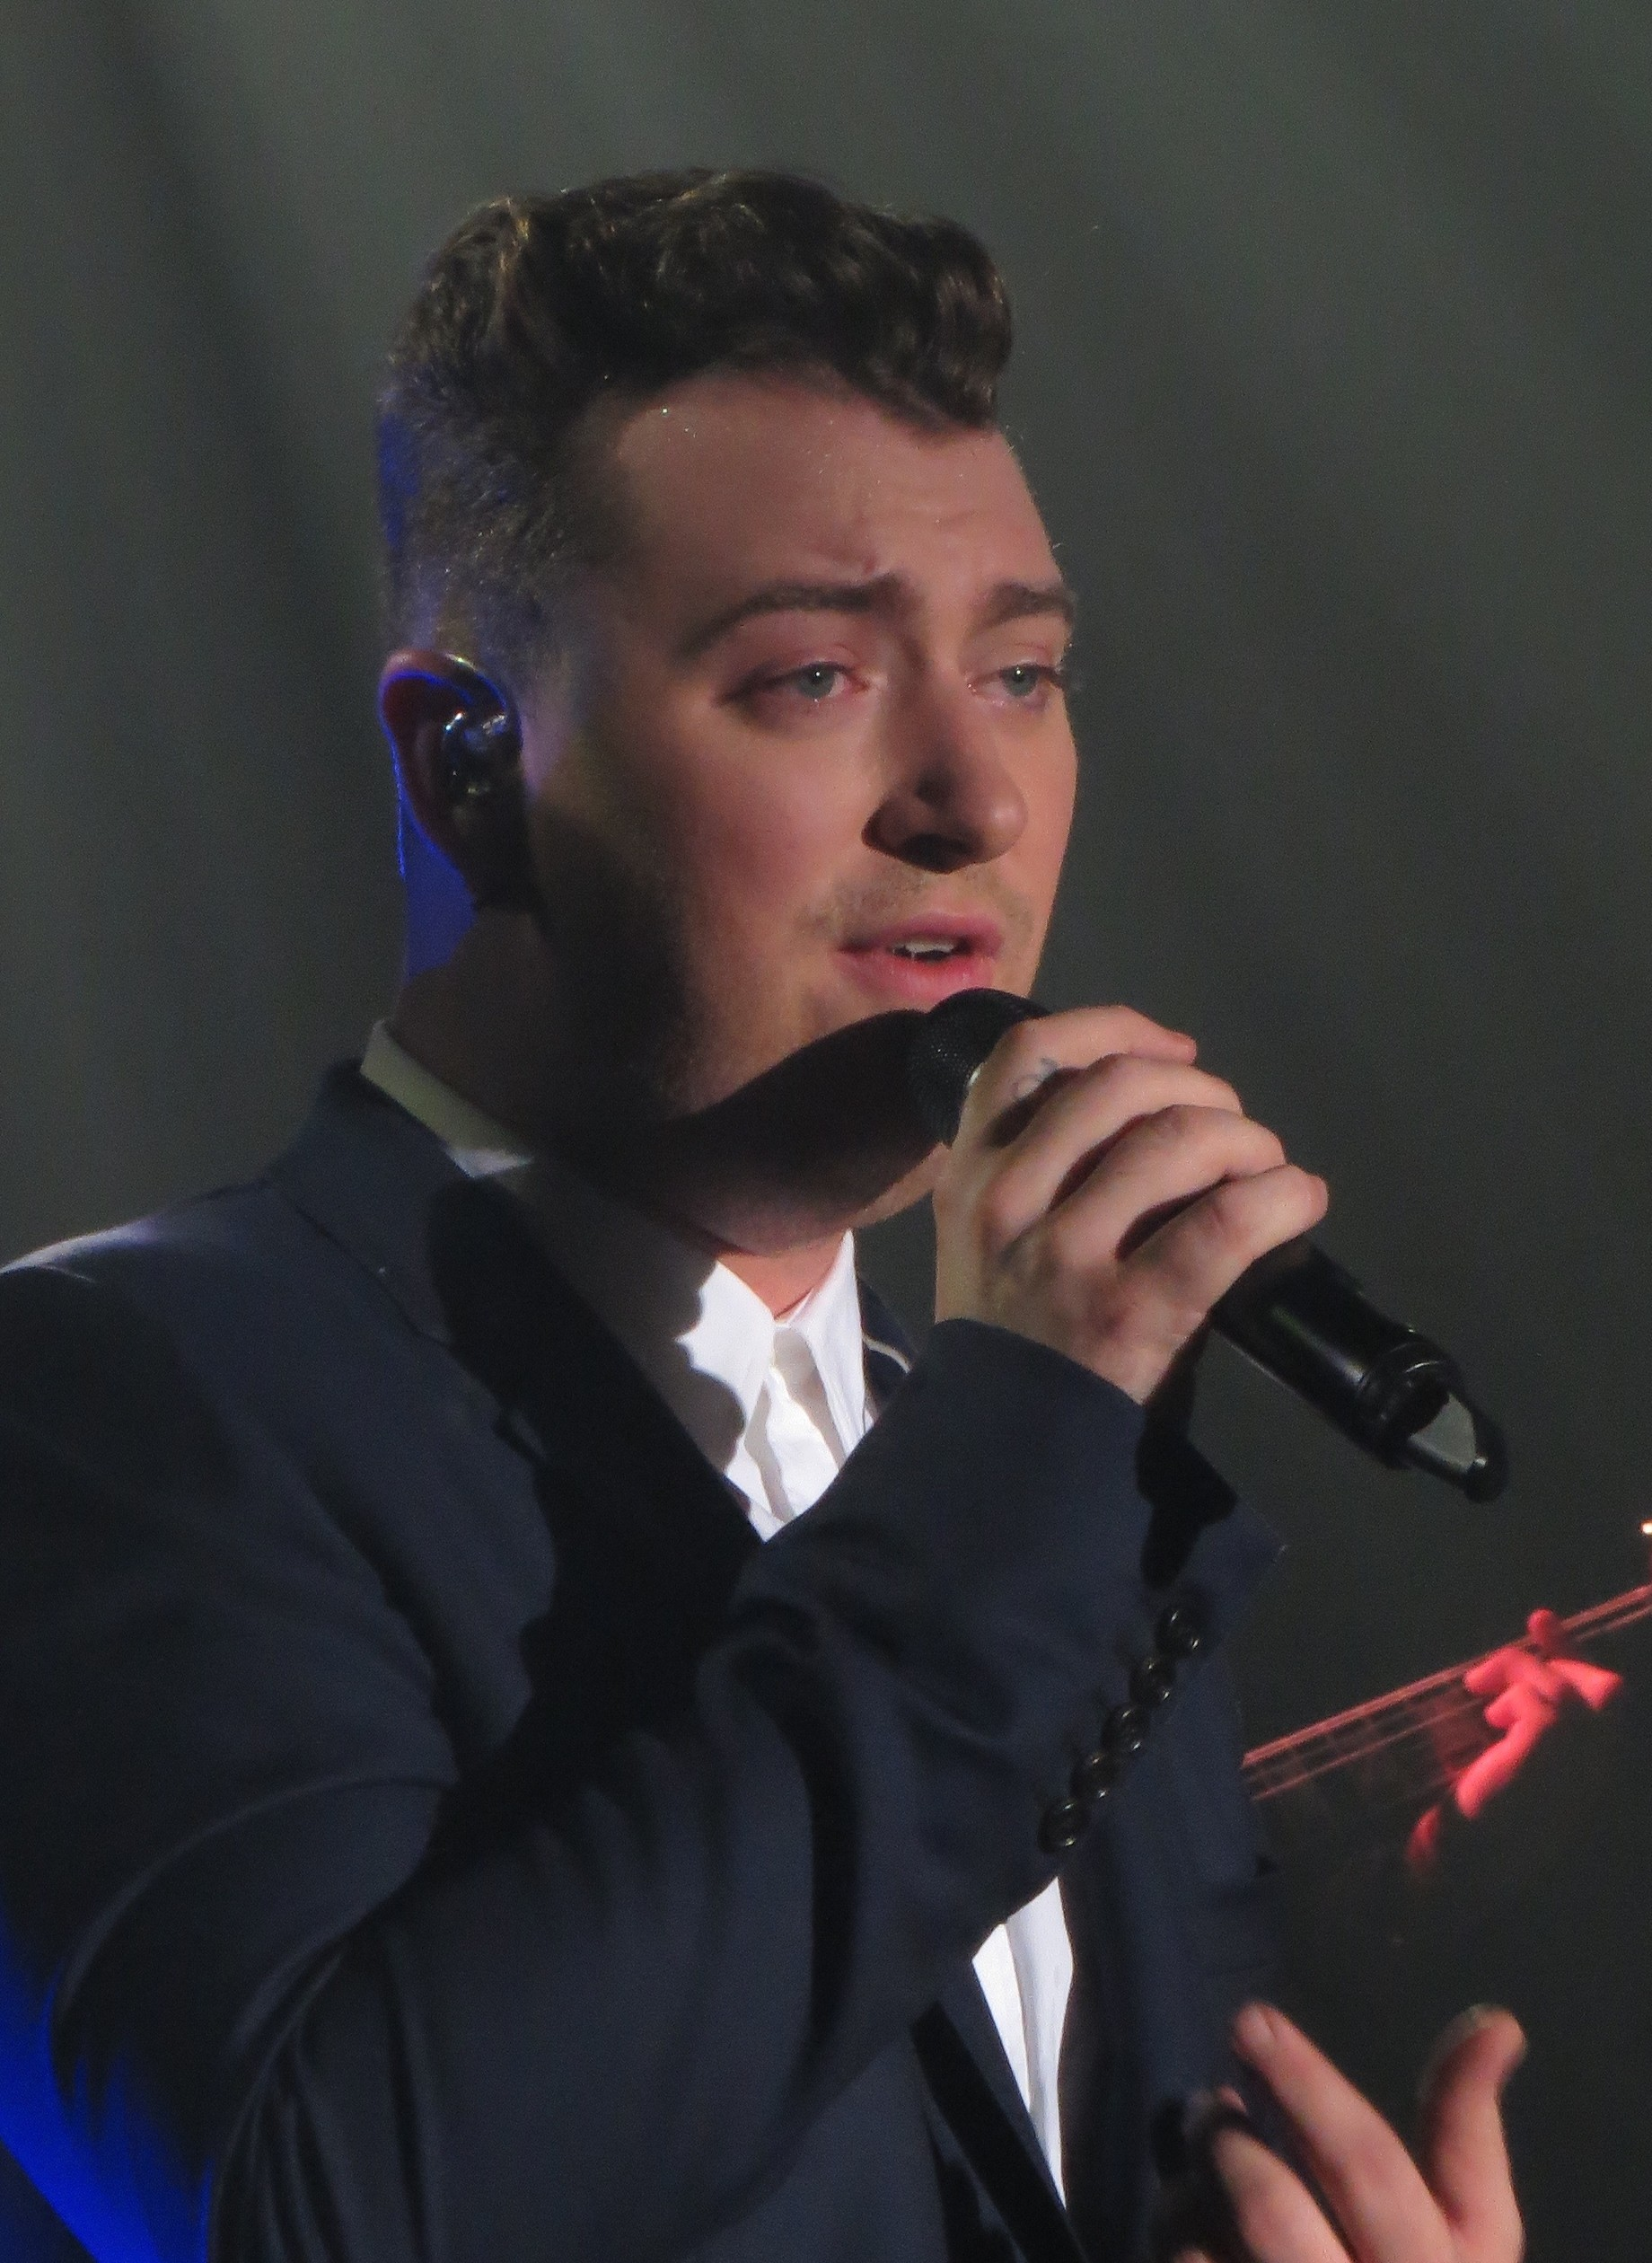 Wanneer Komt Sam Smith Naar Nederland.Sam Smith Wikipedia